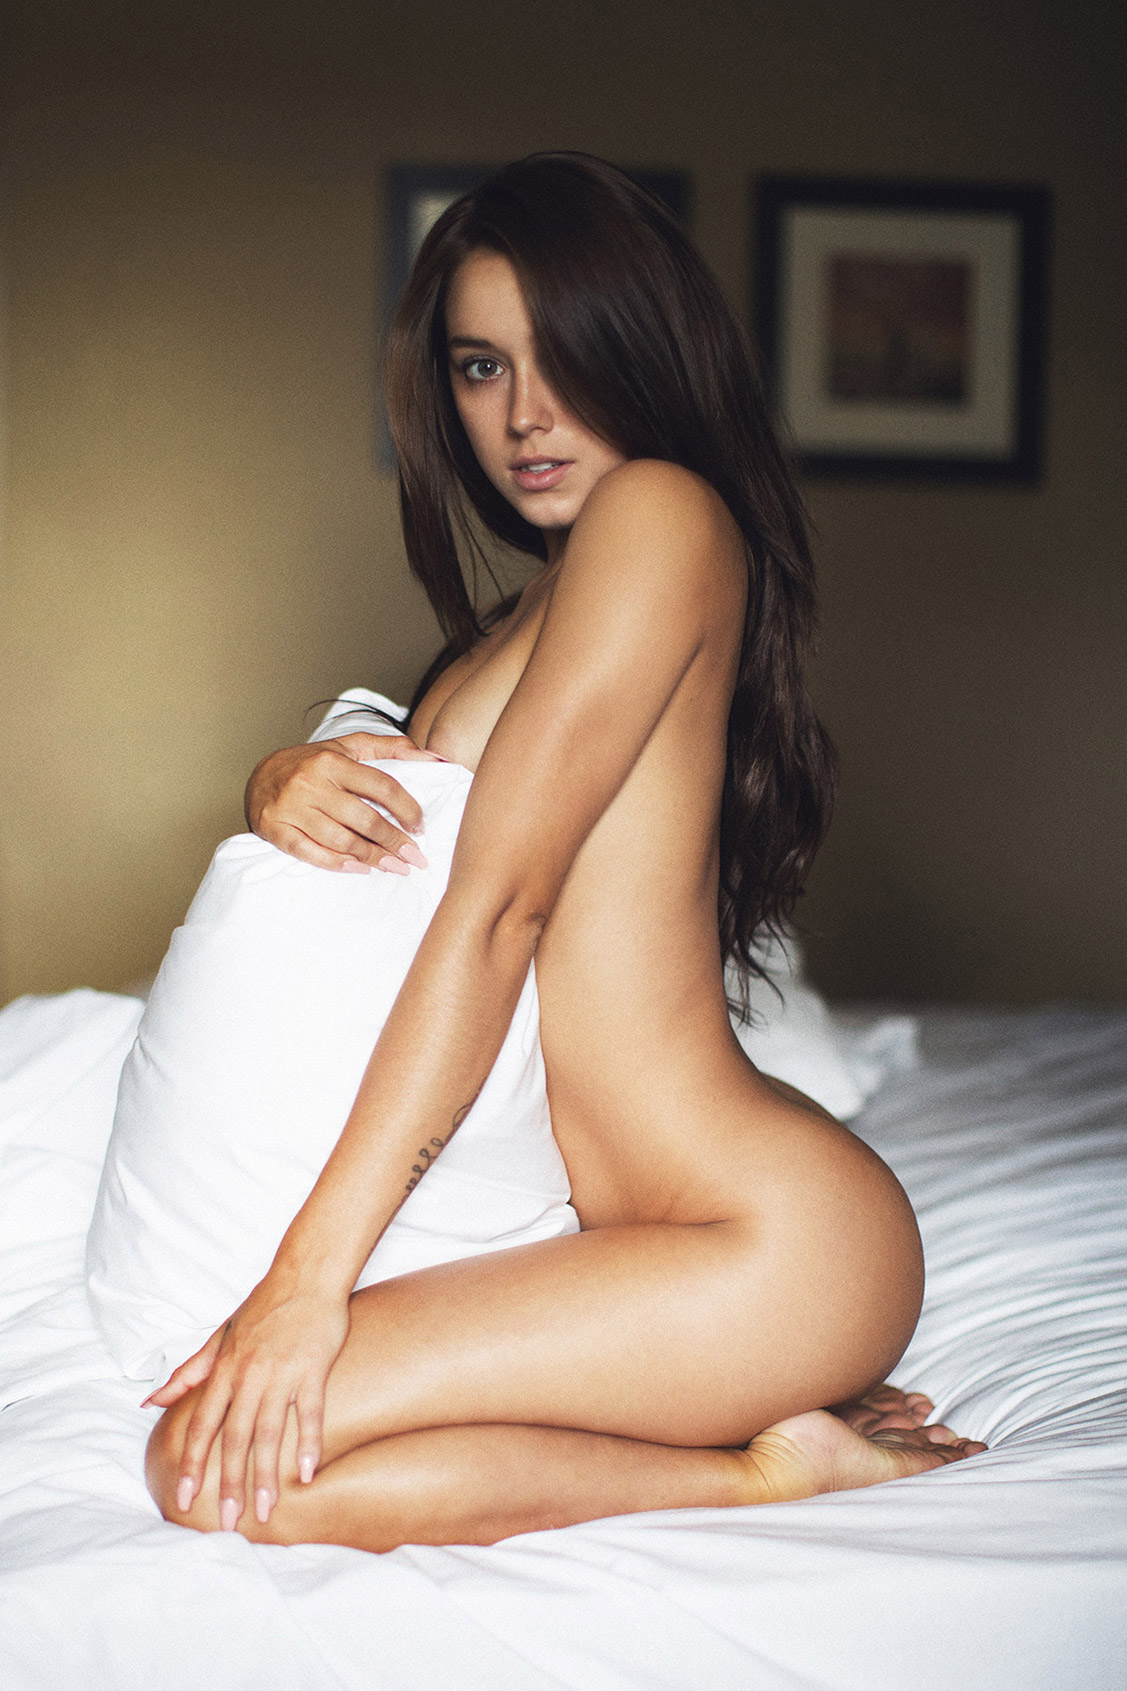 Ready for Bed / Kalyn Rene nude by Jeffrey Thomas - Yume Magazine